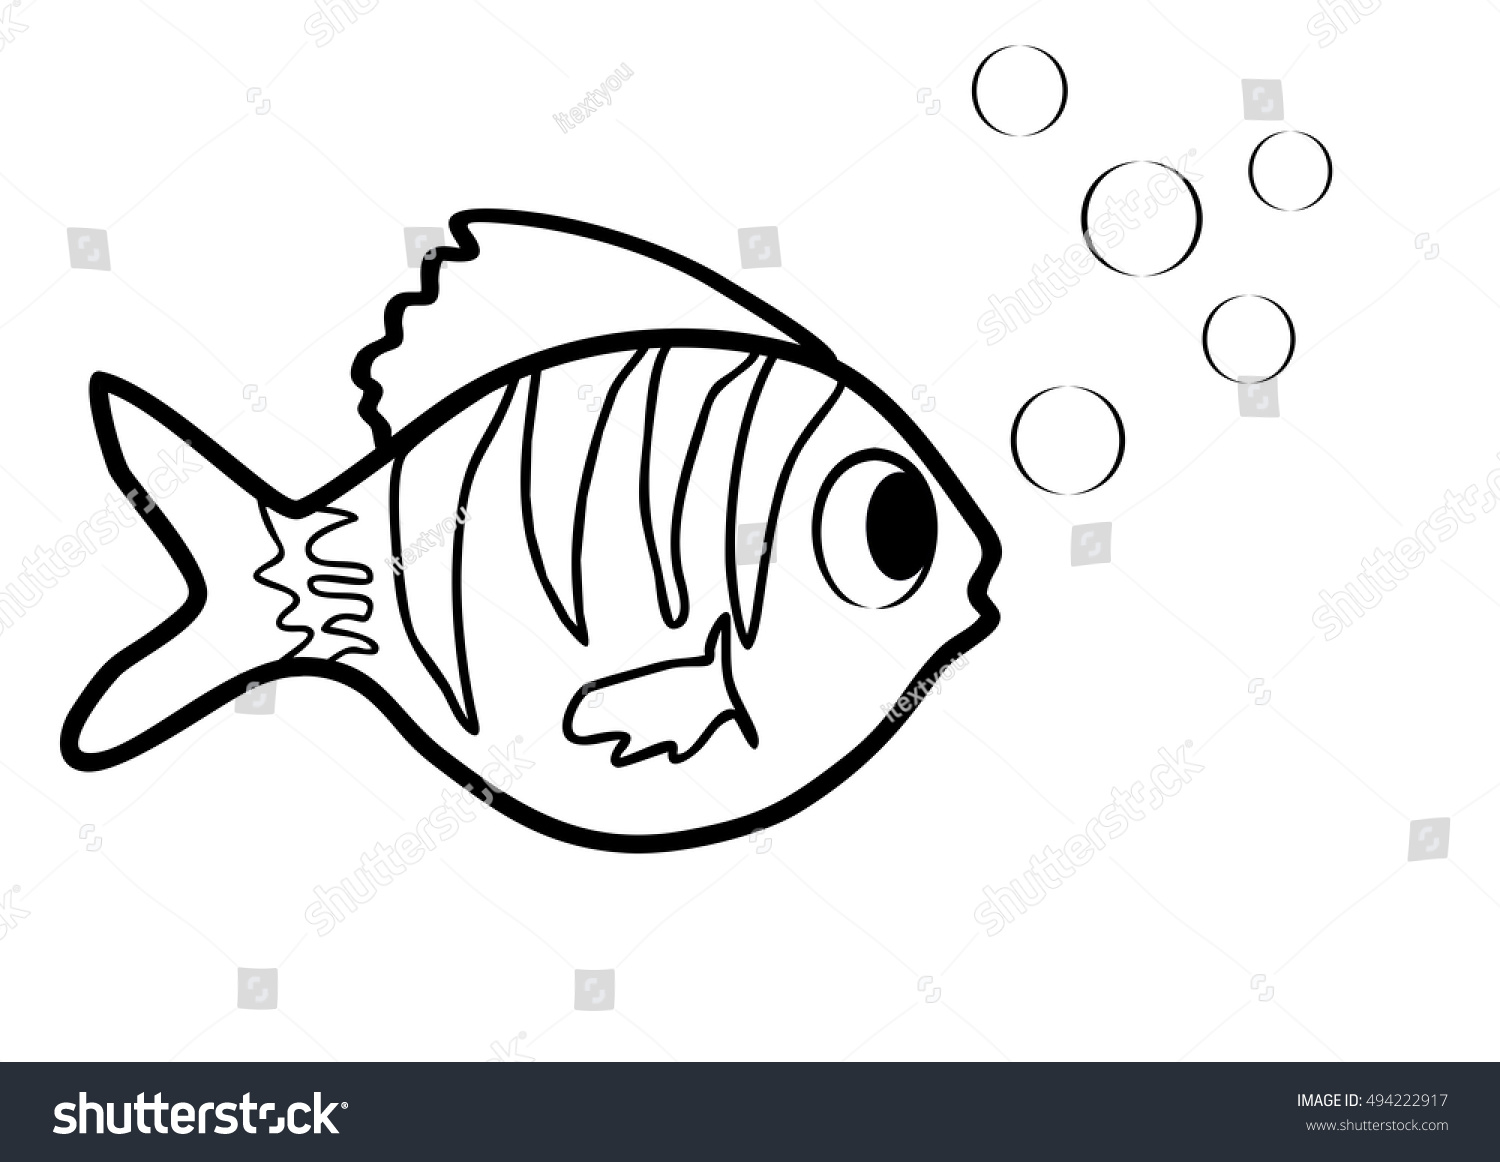 Little Fish Bubbles Coloring Book Black Stock Vector (Royalty Free ...